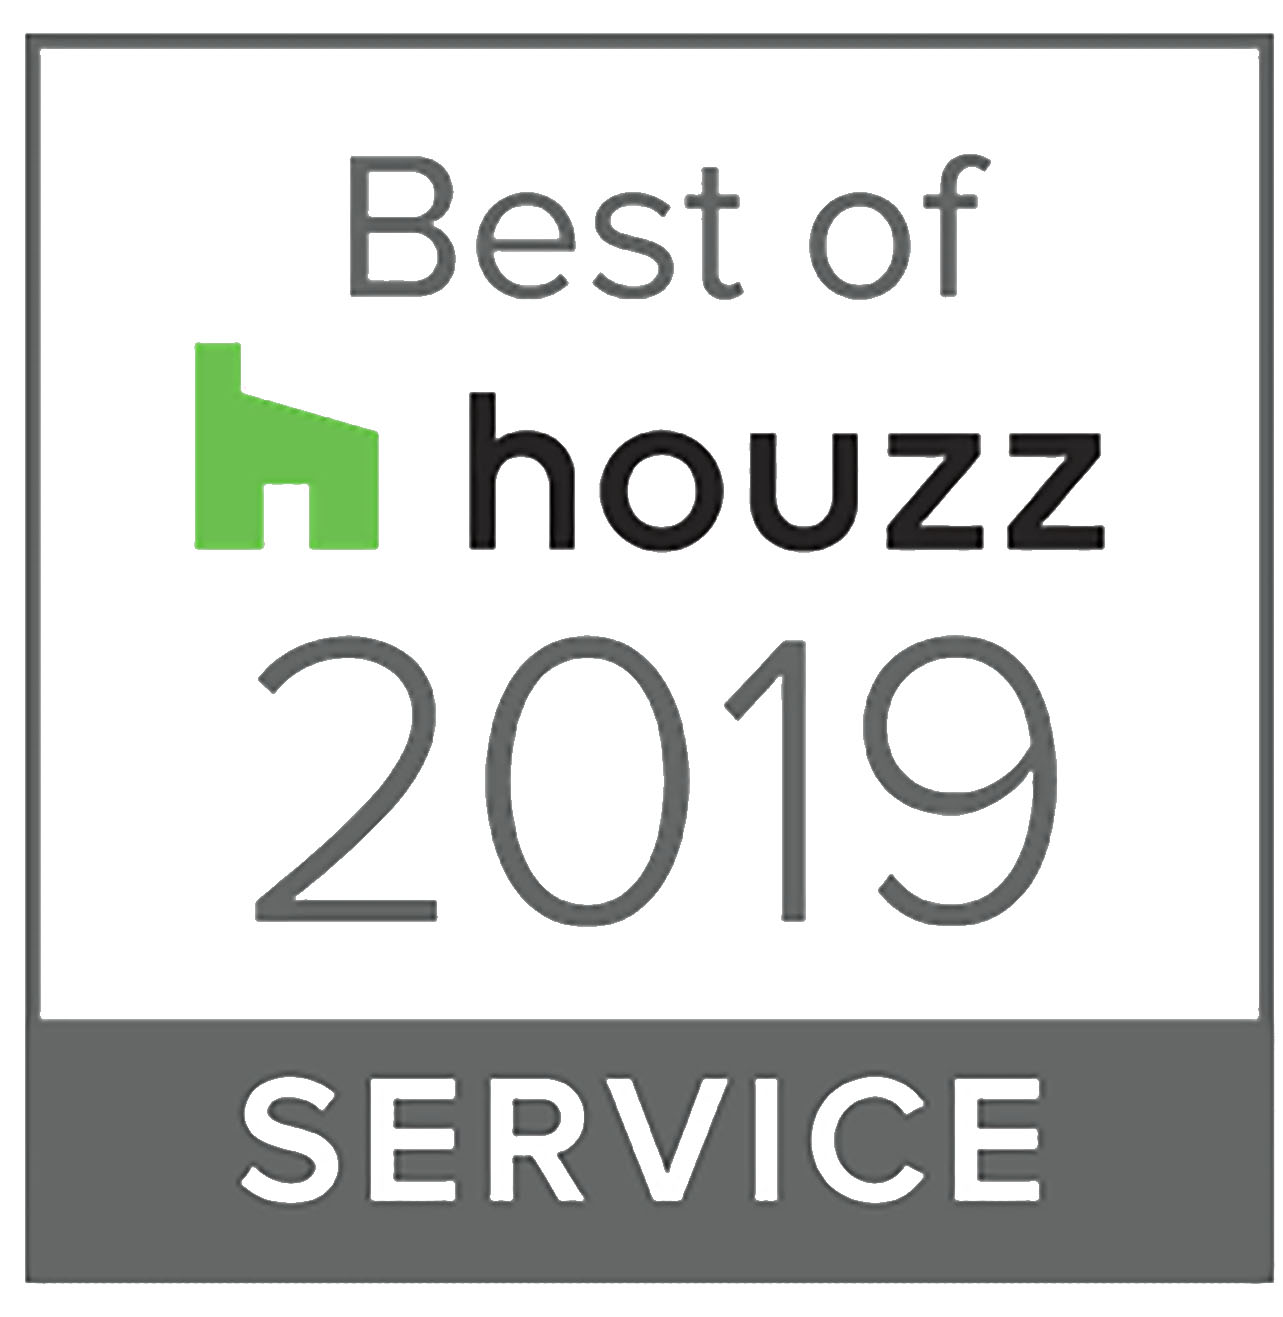 Best of service Houzz 2019